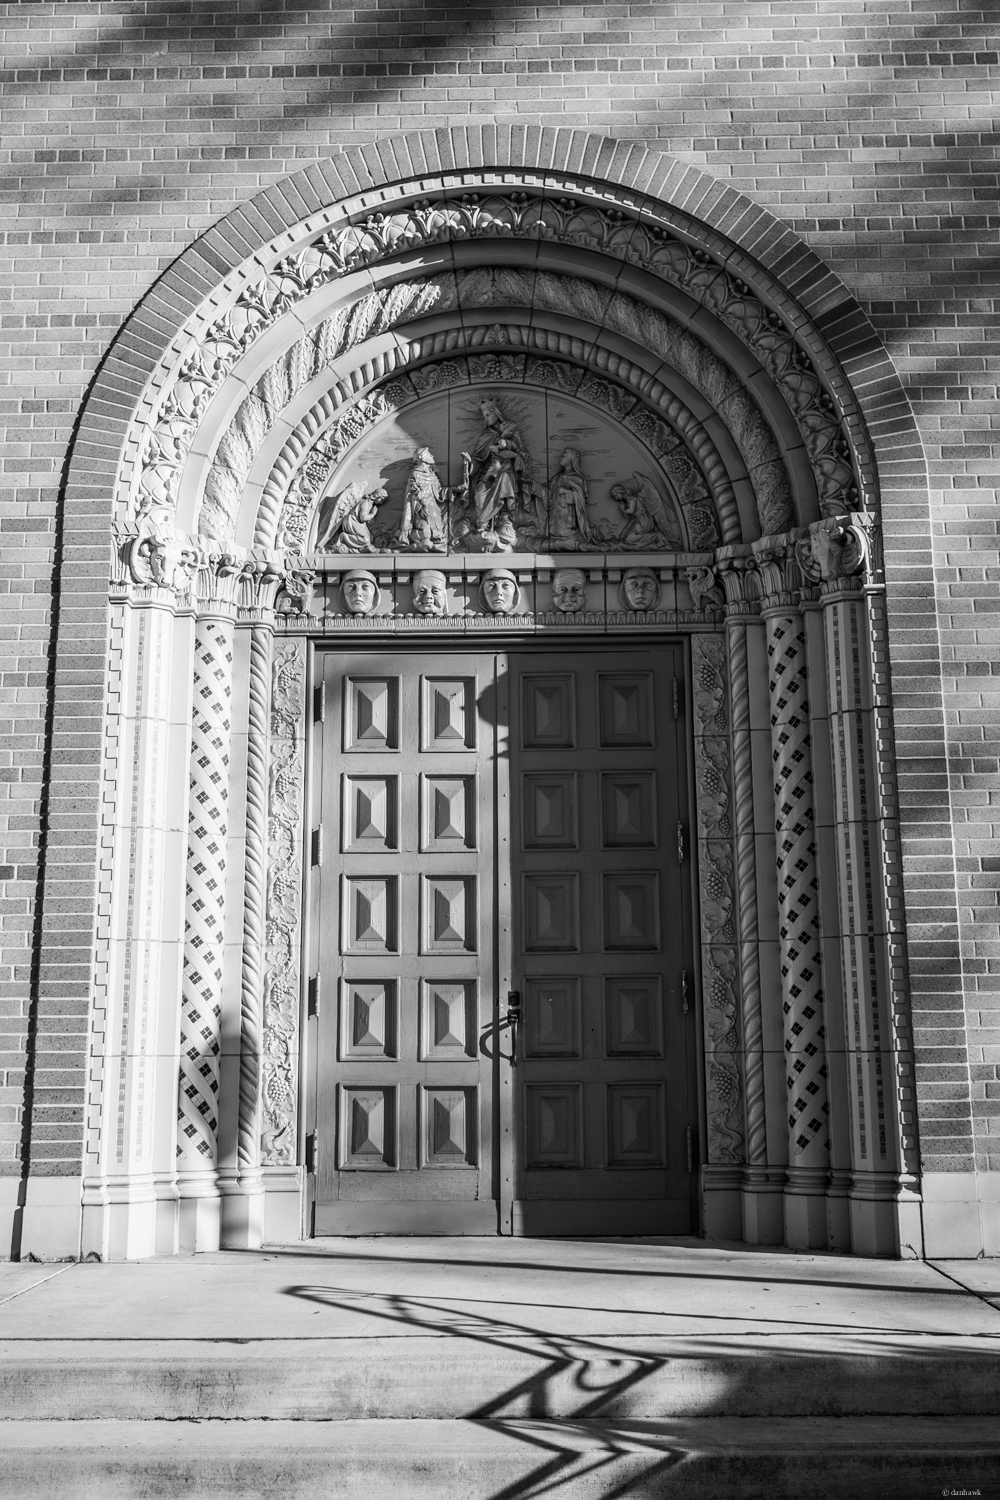 Church Door | 24mm, f/4, ISO 100, 1/400